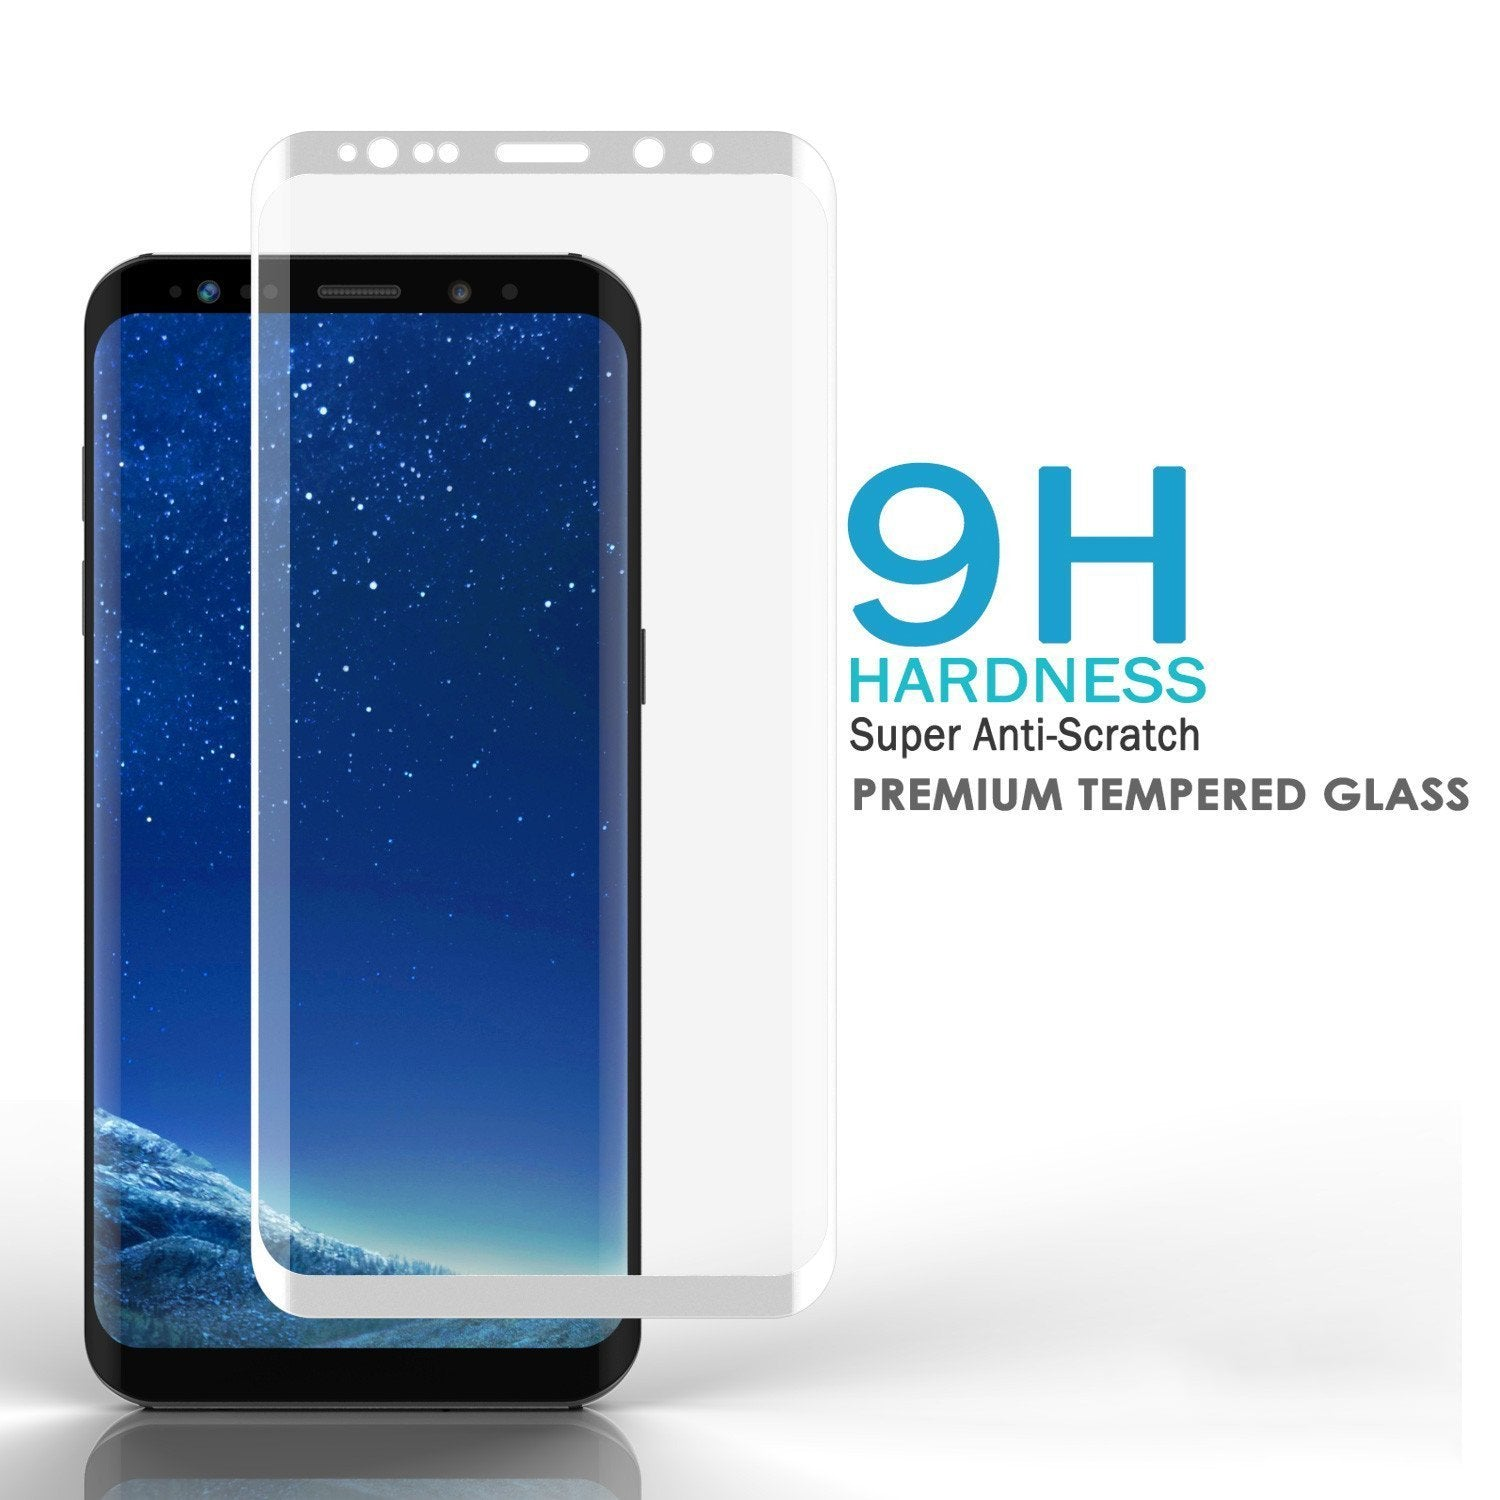 Galaxy S8 Plus Punkcase SHIELD Tempered Glass 0.33mm Thick 9H, White